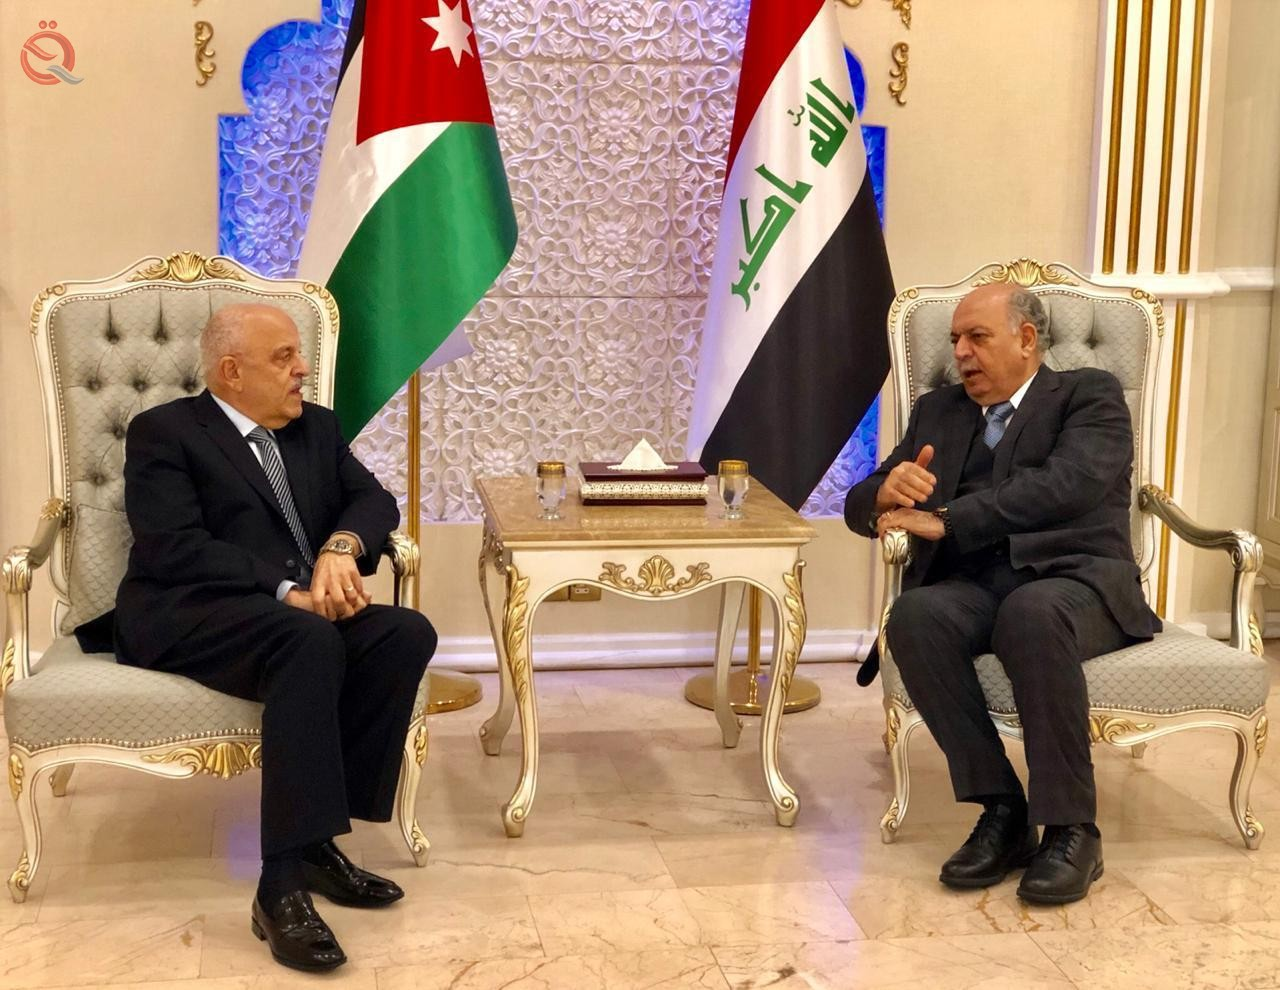 Jordanian Deputy Prime Minister arrives in Baghdad and bilateral talks begin 12622